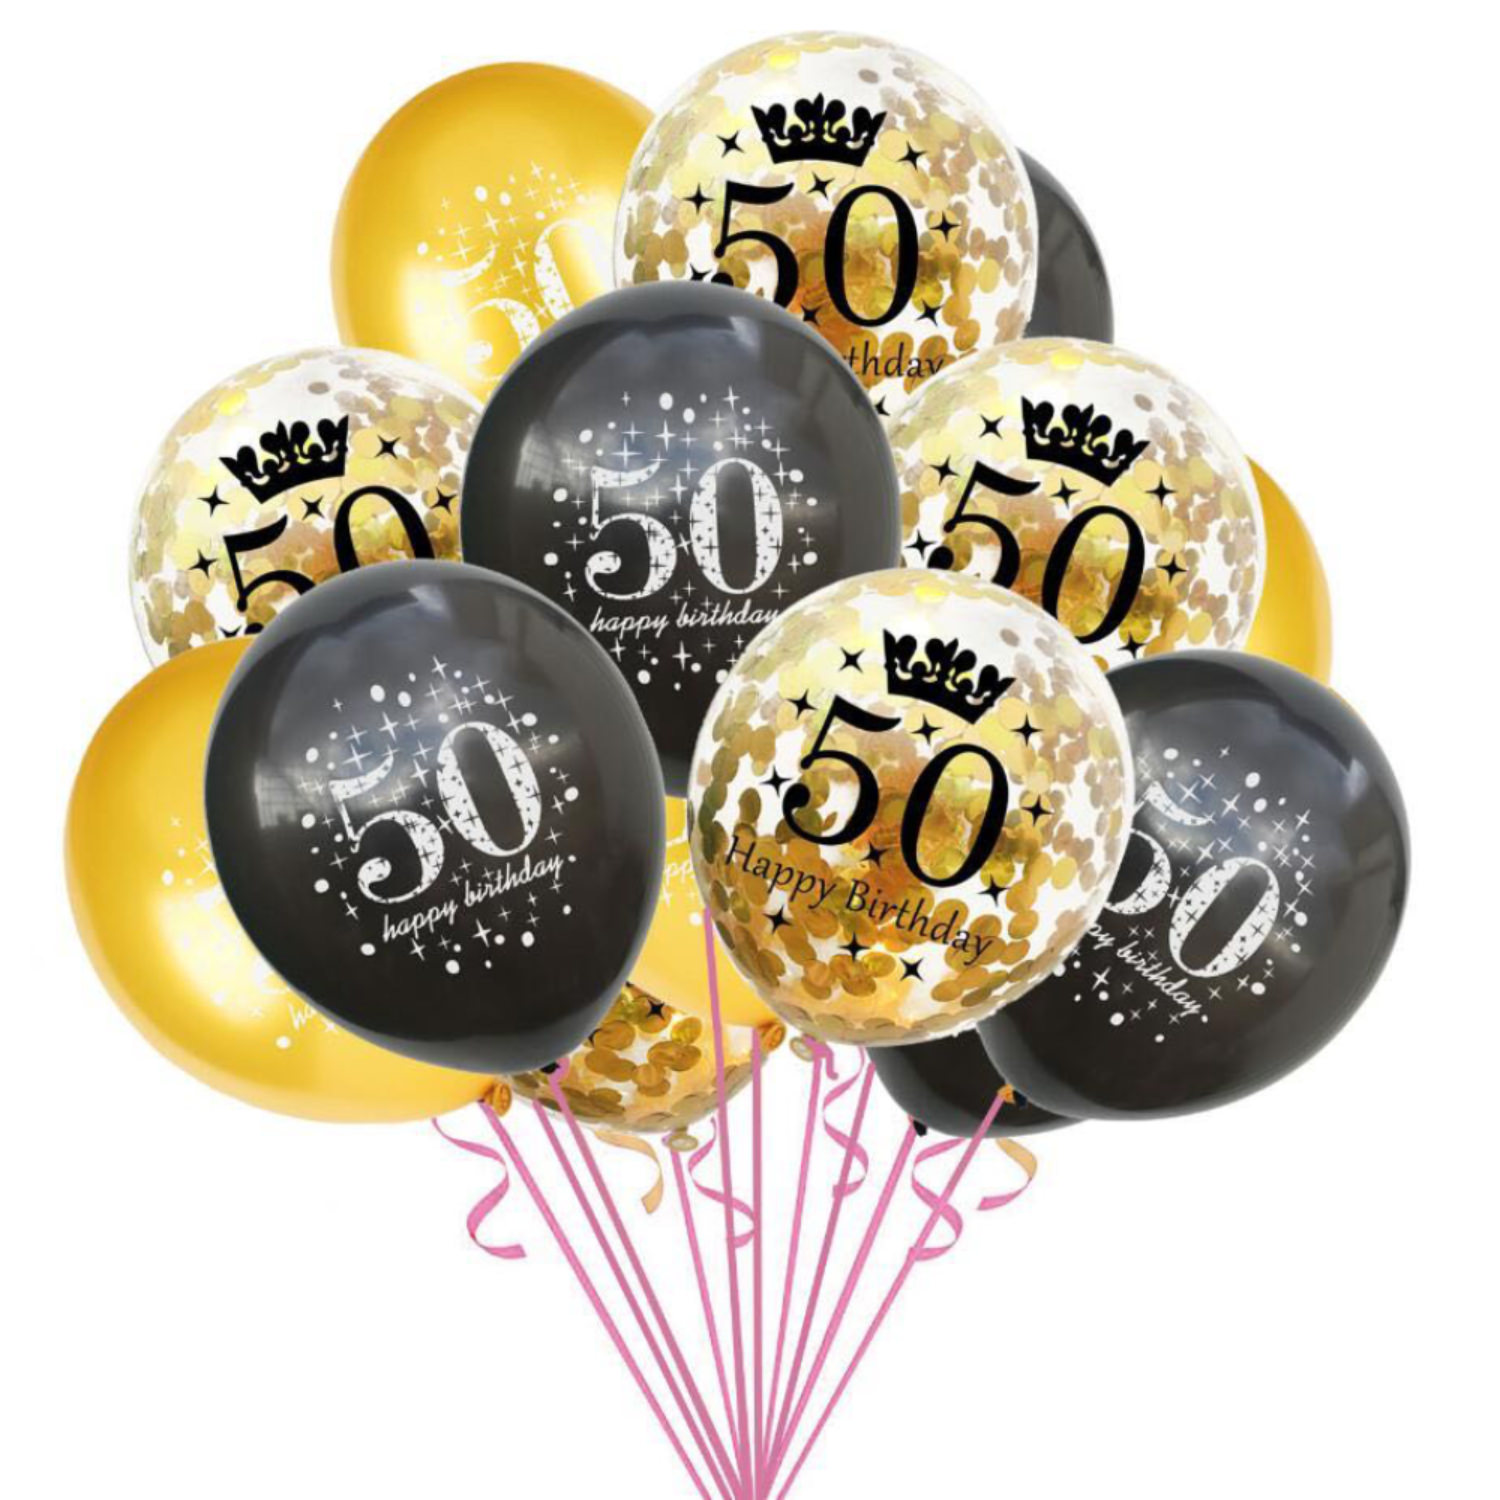 konfetti luftballon set f r 50 geburtstag feier party ballons gold schwarz ebay. Black Bedroom Furniture Sets. Home Design Ideas